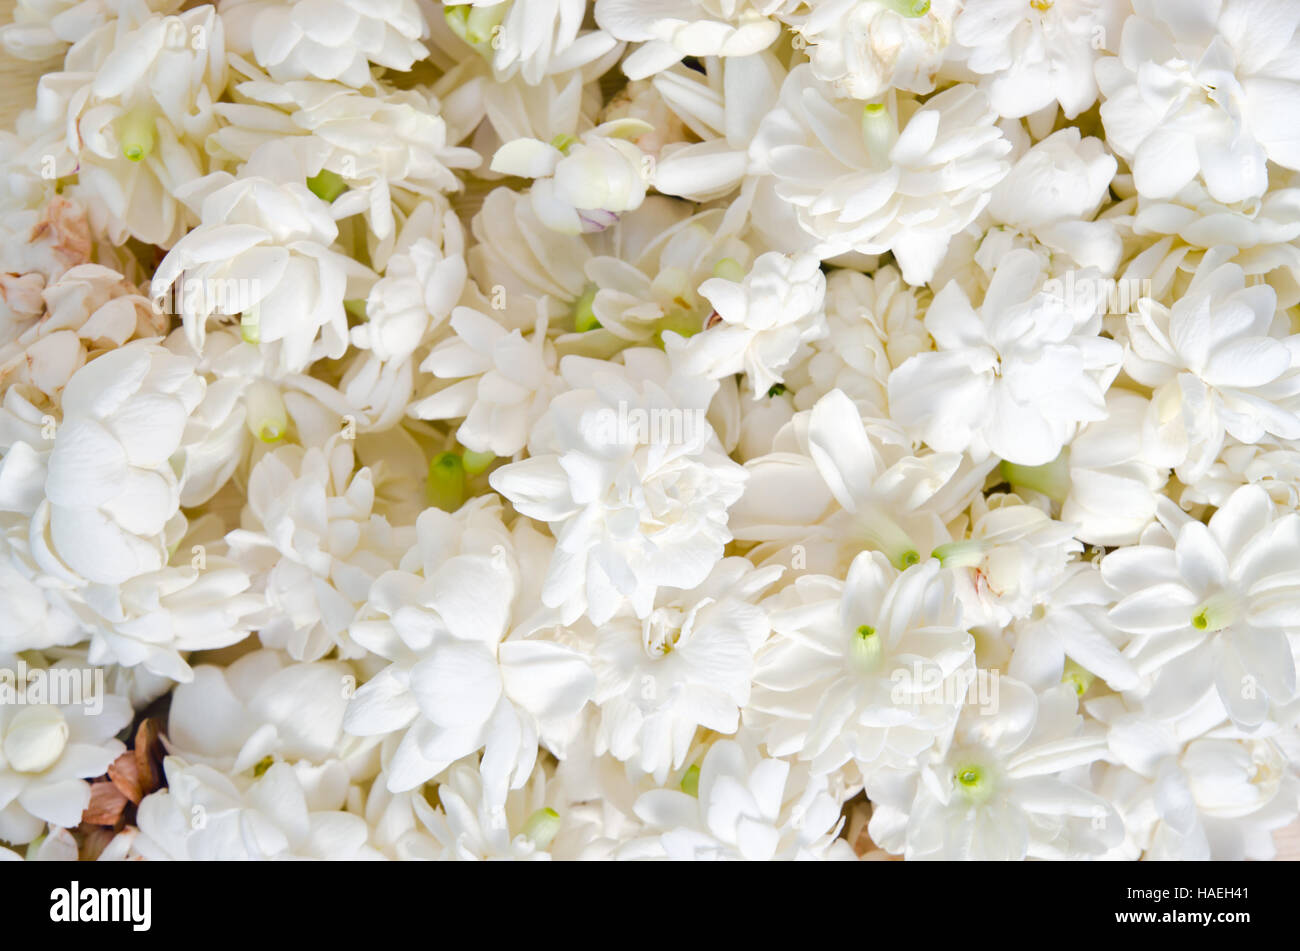 Jasmine other names are jasminum melati jessamine oleaceae stock jasmine other names are jasminum melati jessamine oleaceae jasmine flowers spread over white background izmirmasajfo